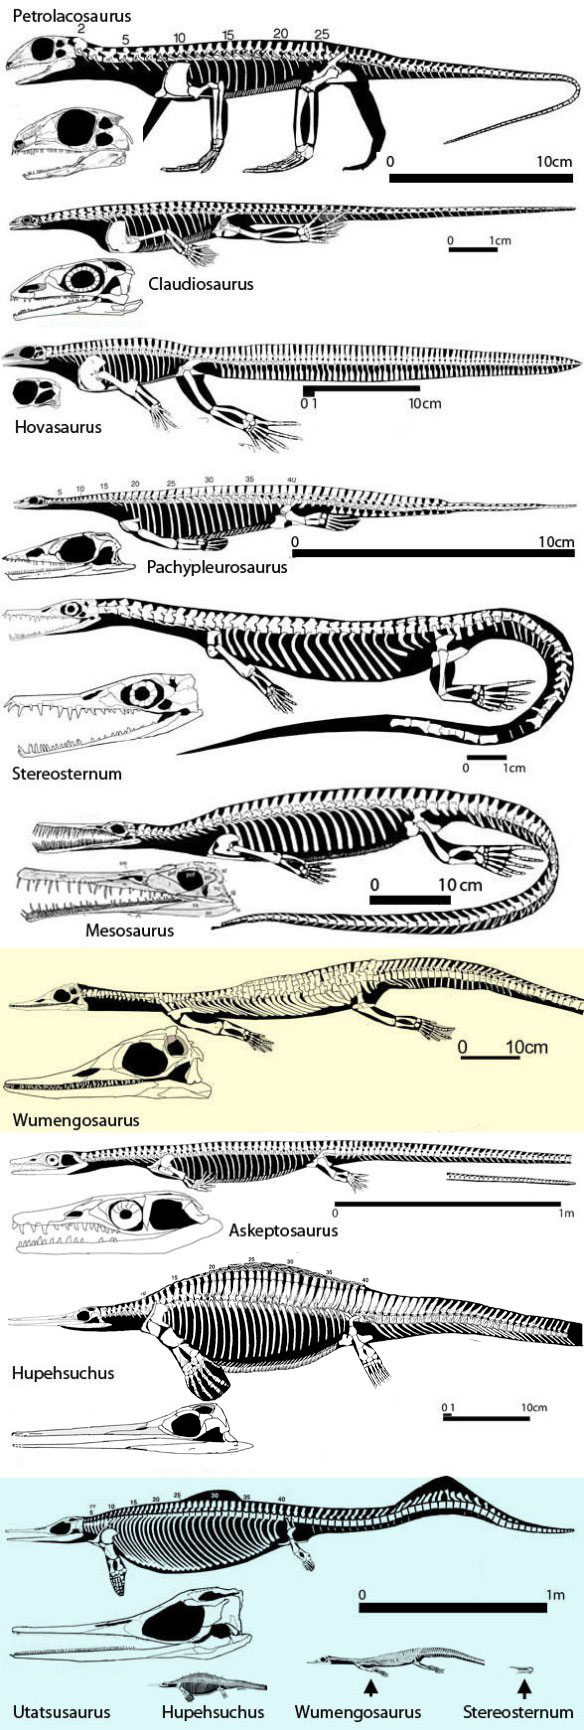 Figure 2. Click to enlarge. The origin of ichthyosaurs and thalattosaurs from basal diapsids and basal mesosaurs. Relationships are rather apparent when seen in this context.